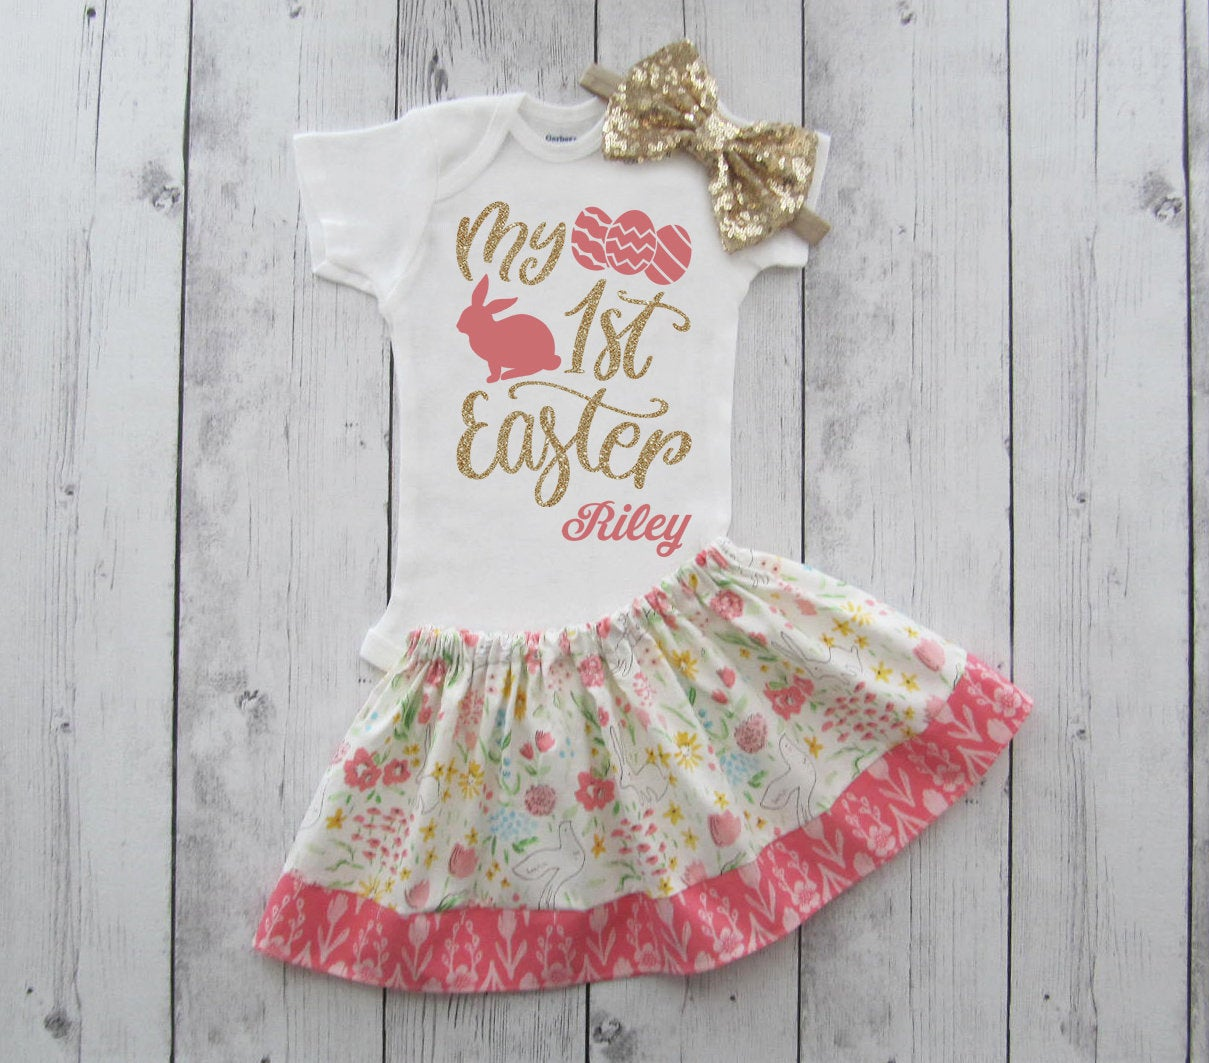 My First Easter dress - floral skirt, first easter outfit girl, easter outfit girl, shabby chic skirt, my first easter outfit girl, hibiscus